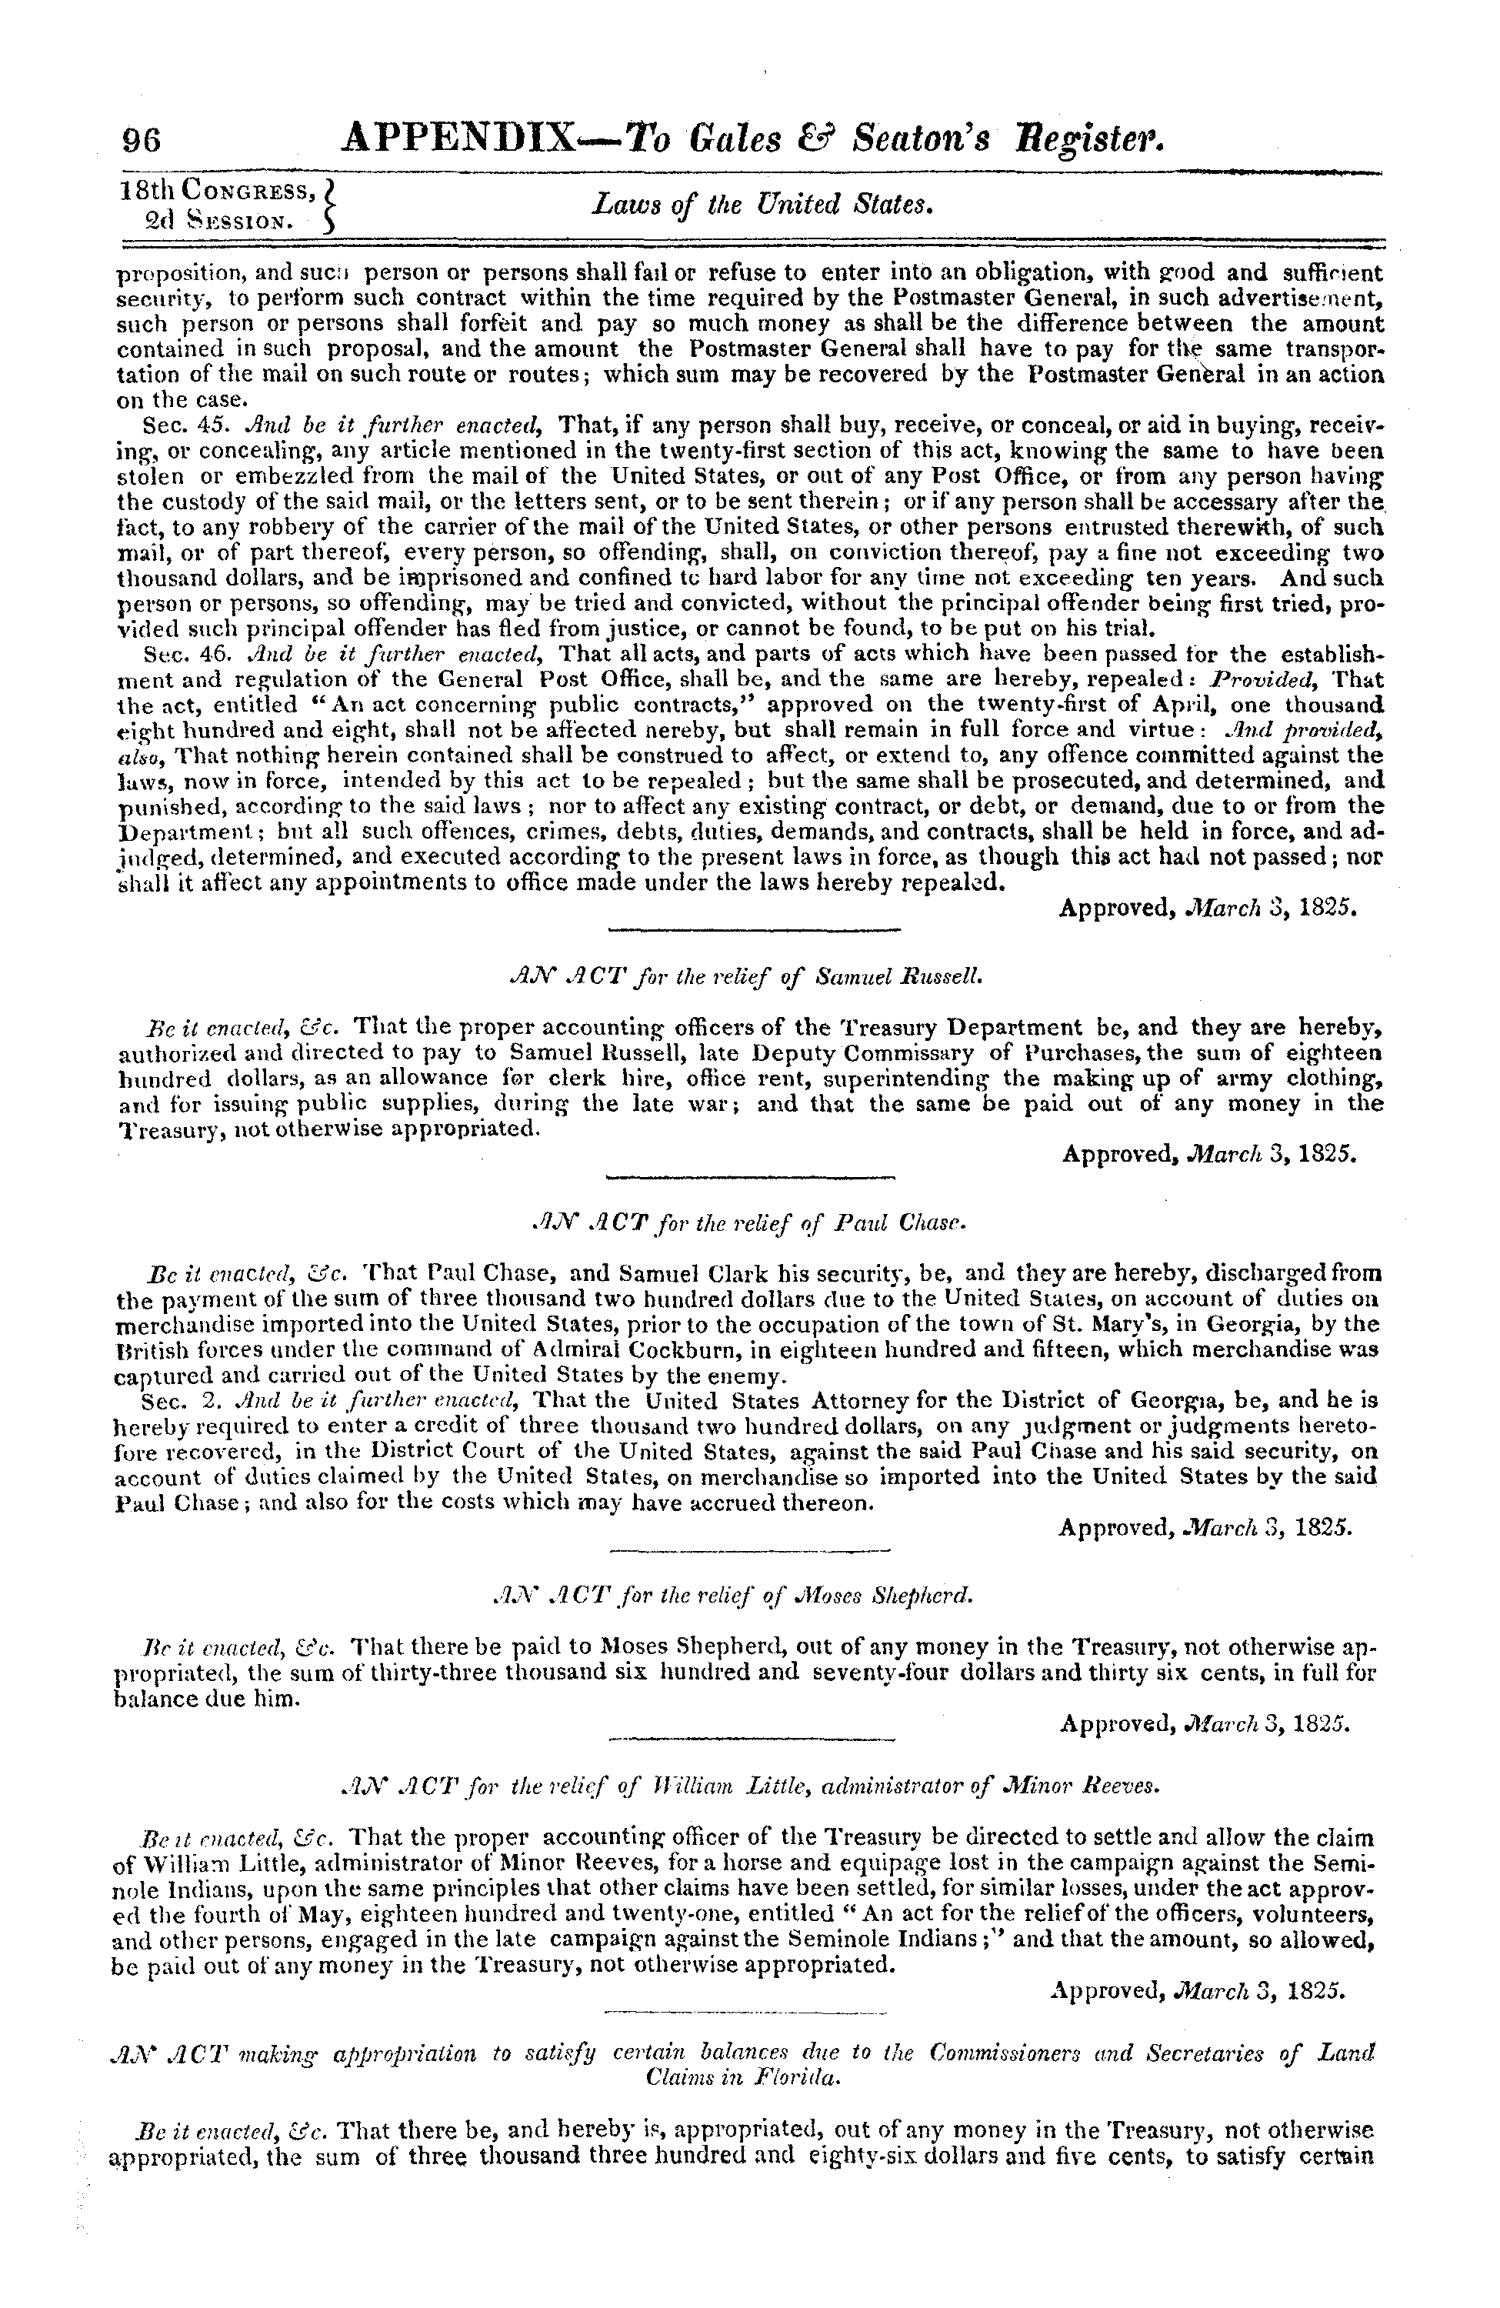 Register of Debates in Congress, Comprising the Leading Debates and Incidents of the Second Session of the Eighteenth Congress                                                                                                      96